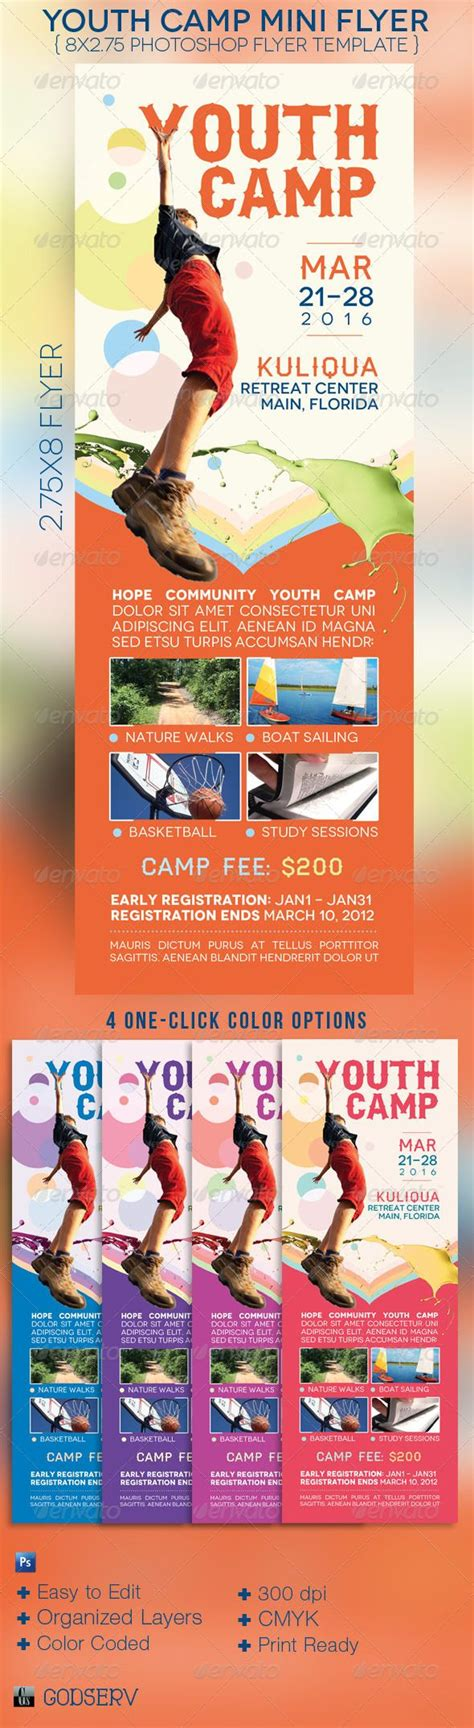 youth flyer template free youth c mini flyer template charity children